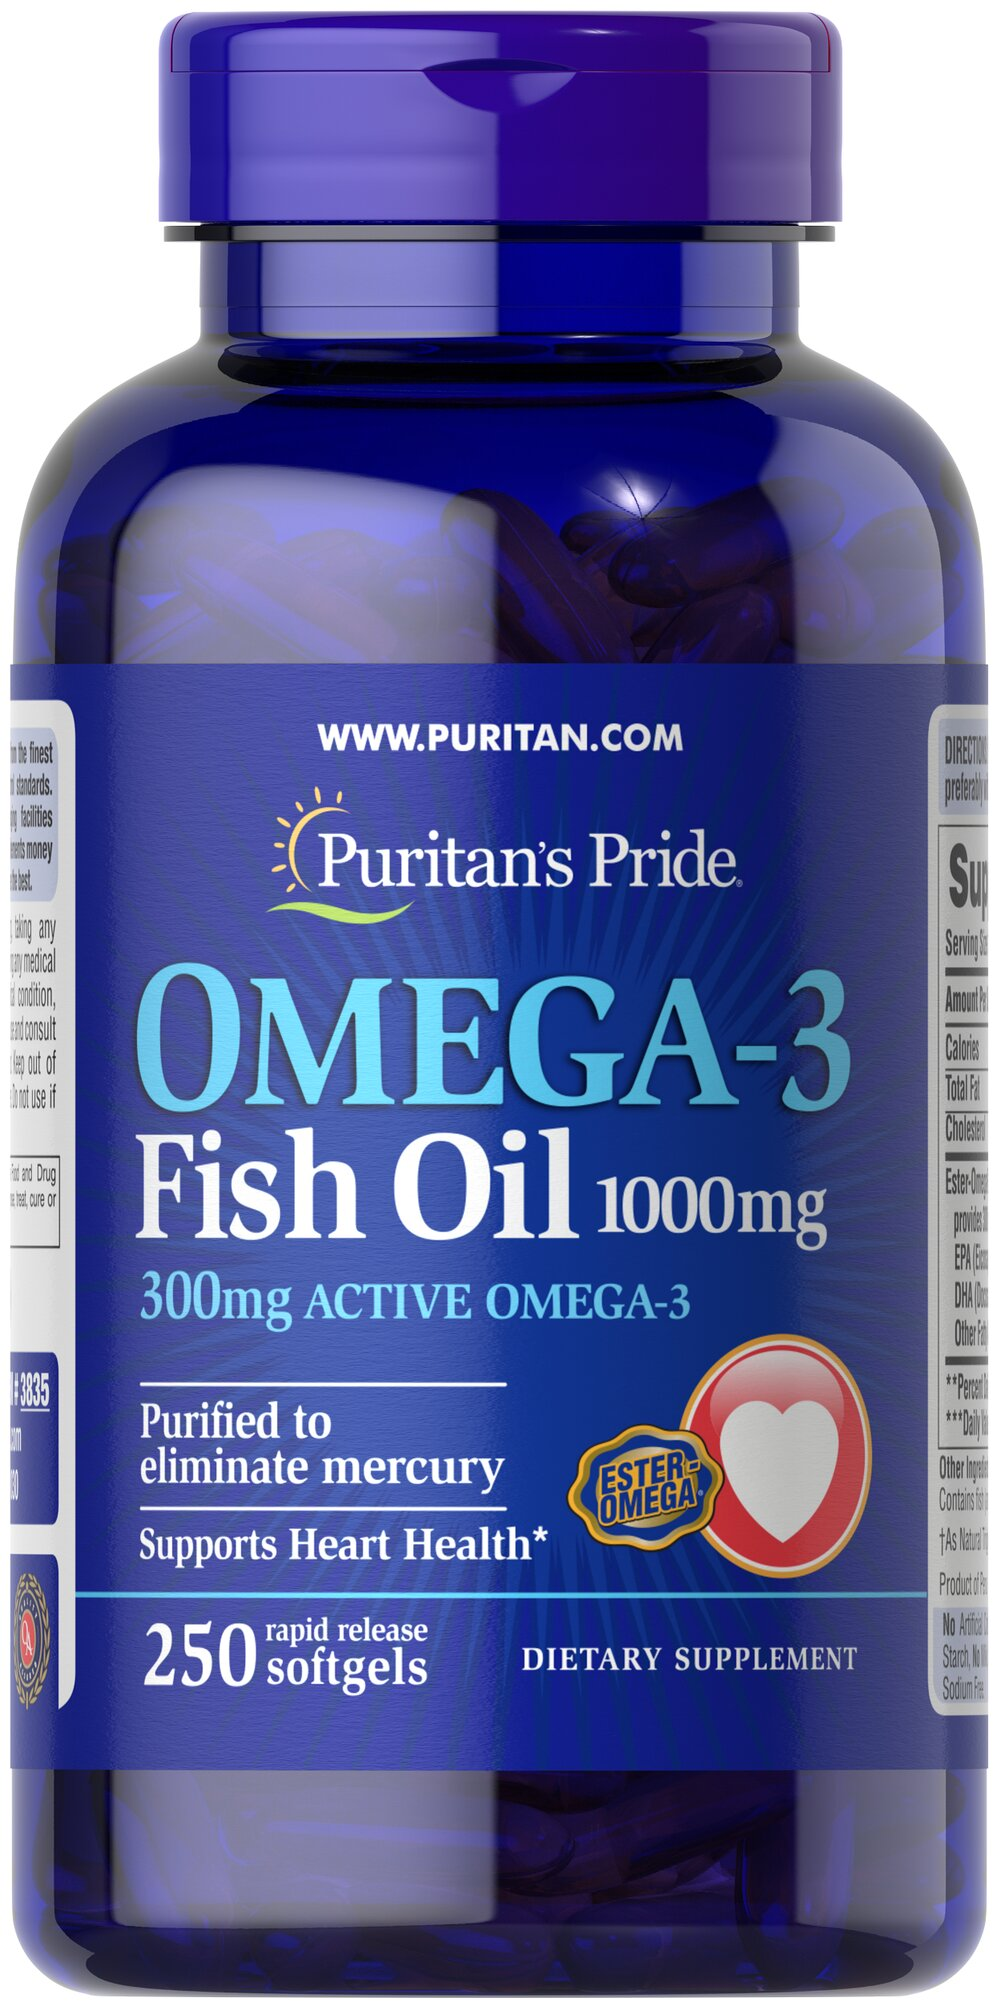 Omega 3 fish oil 1000 mg 300 mg active omega 3 250 for Fish oil omega 3 benefits